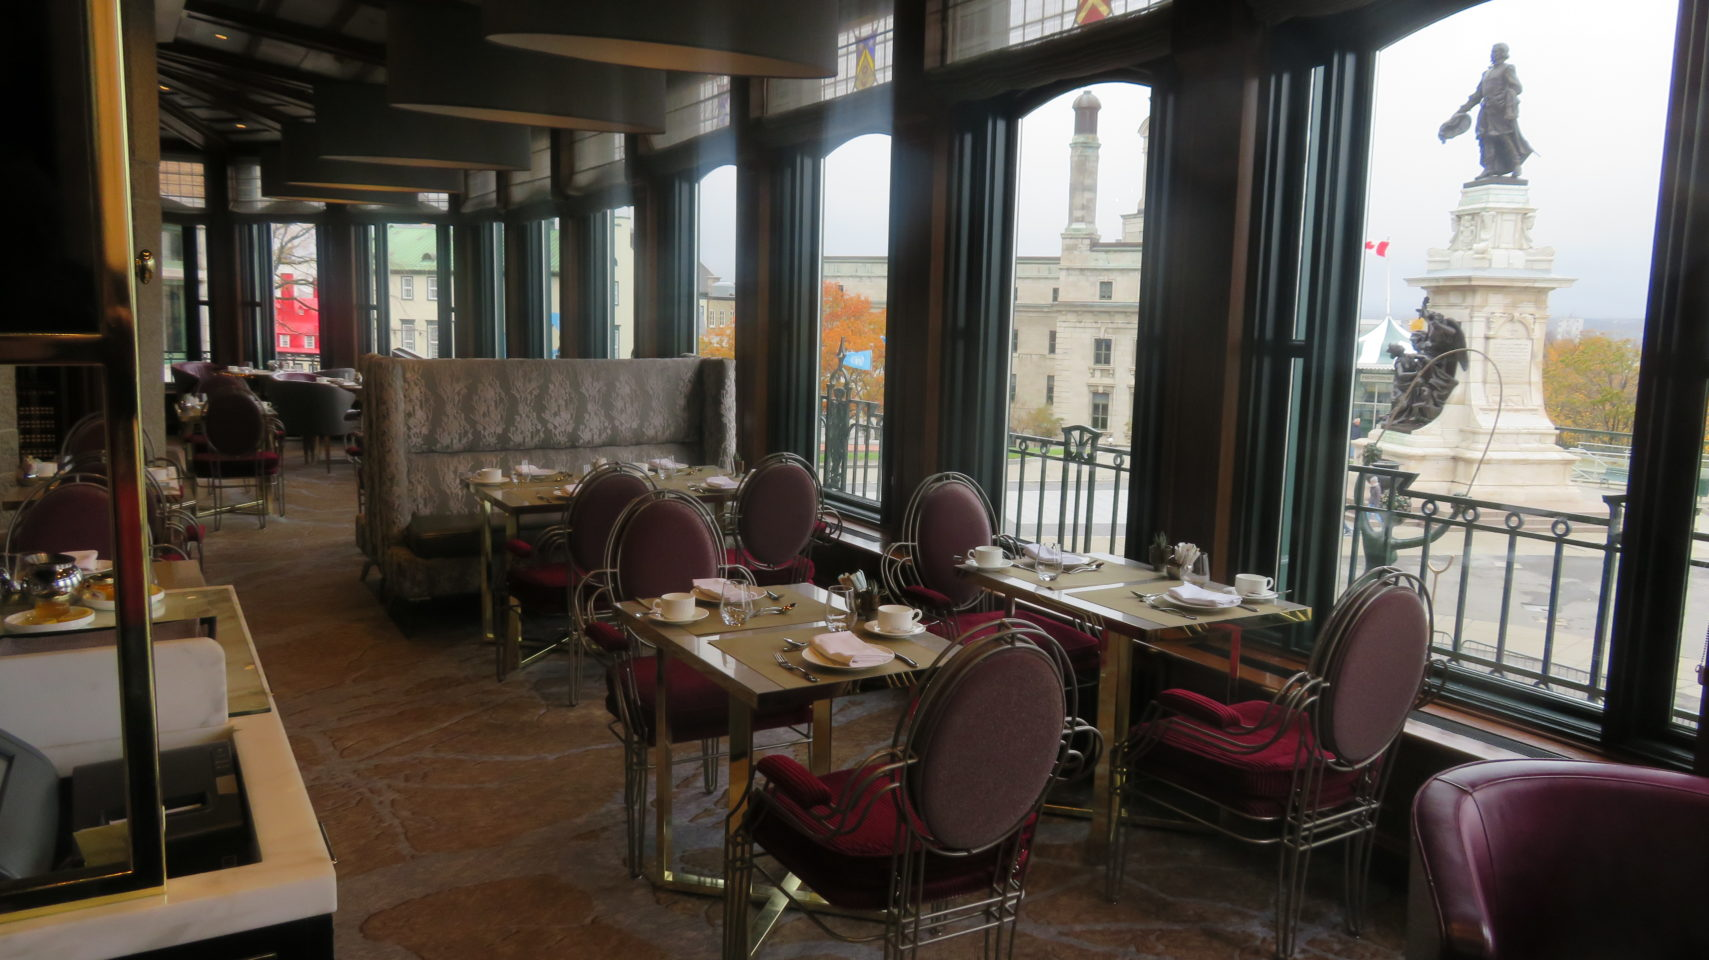 Alcove with a View at the Champlain Restaurant of the Fairmont Le Chateau Frontenac